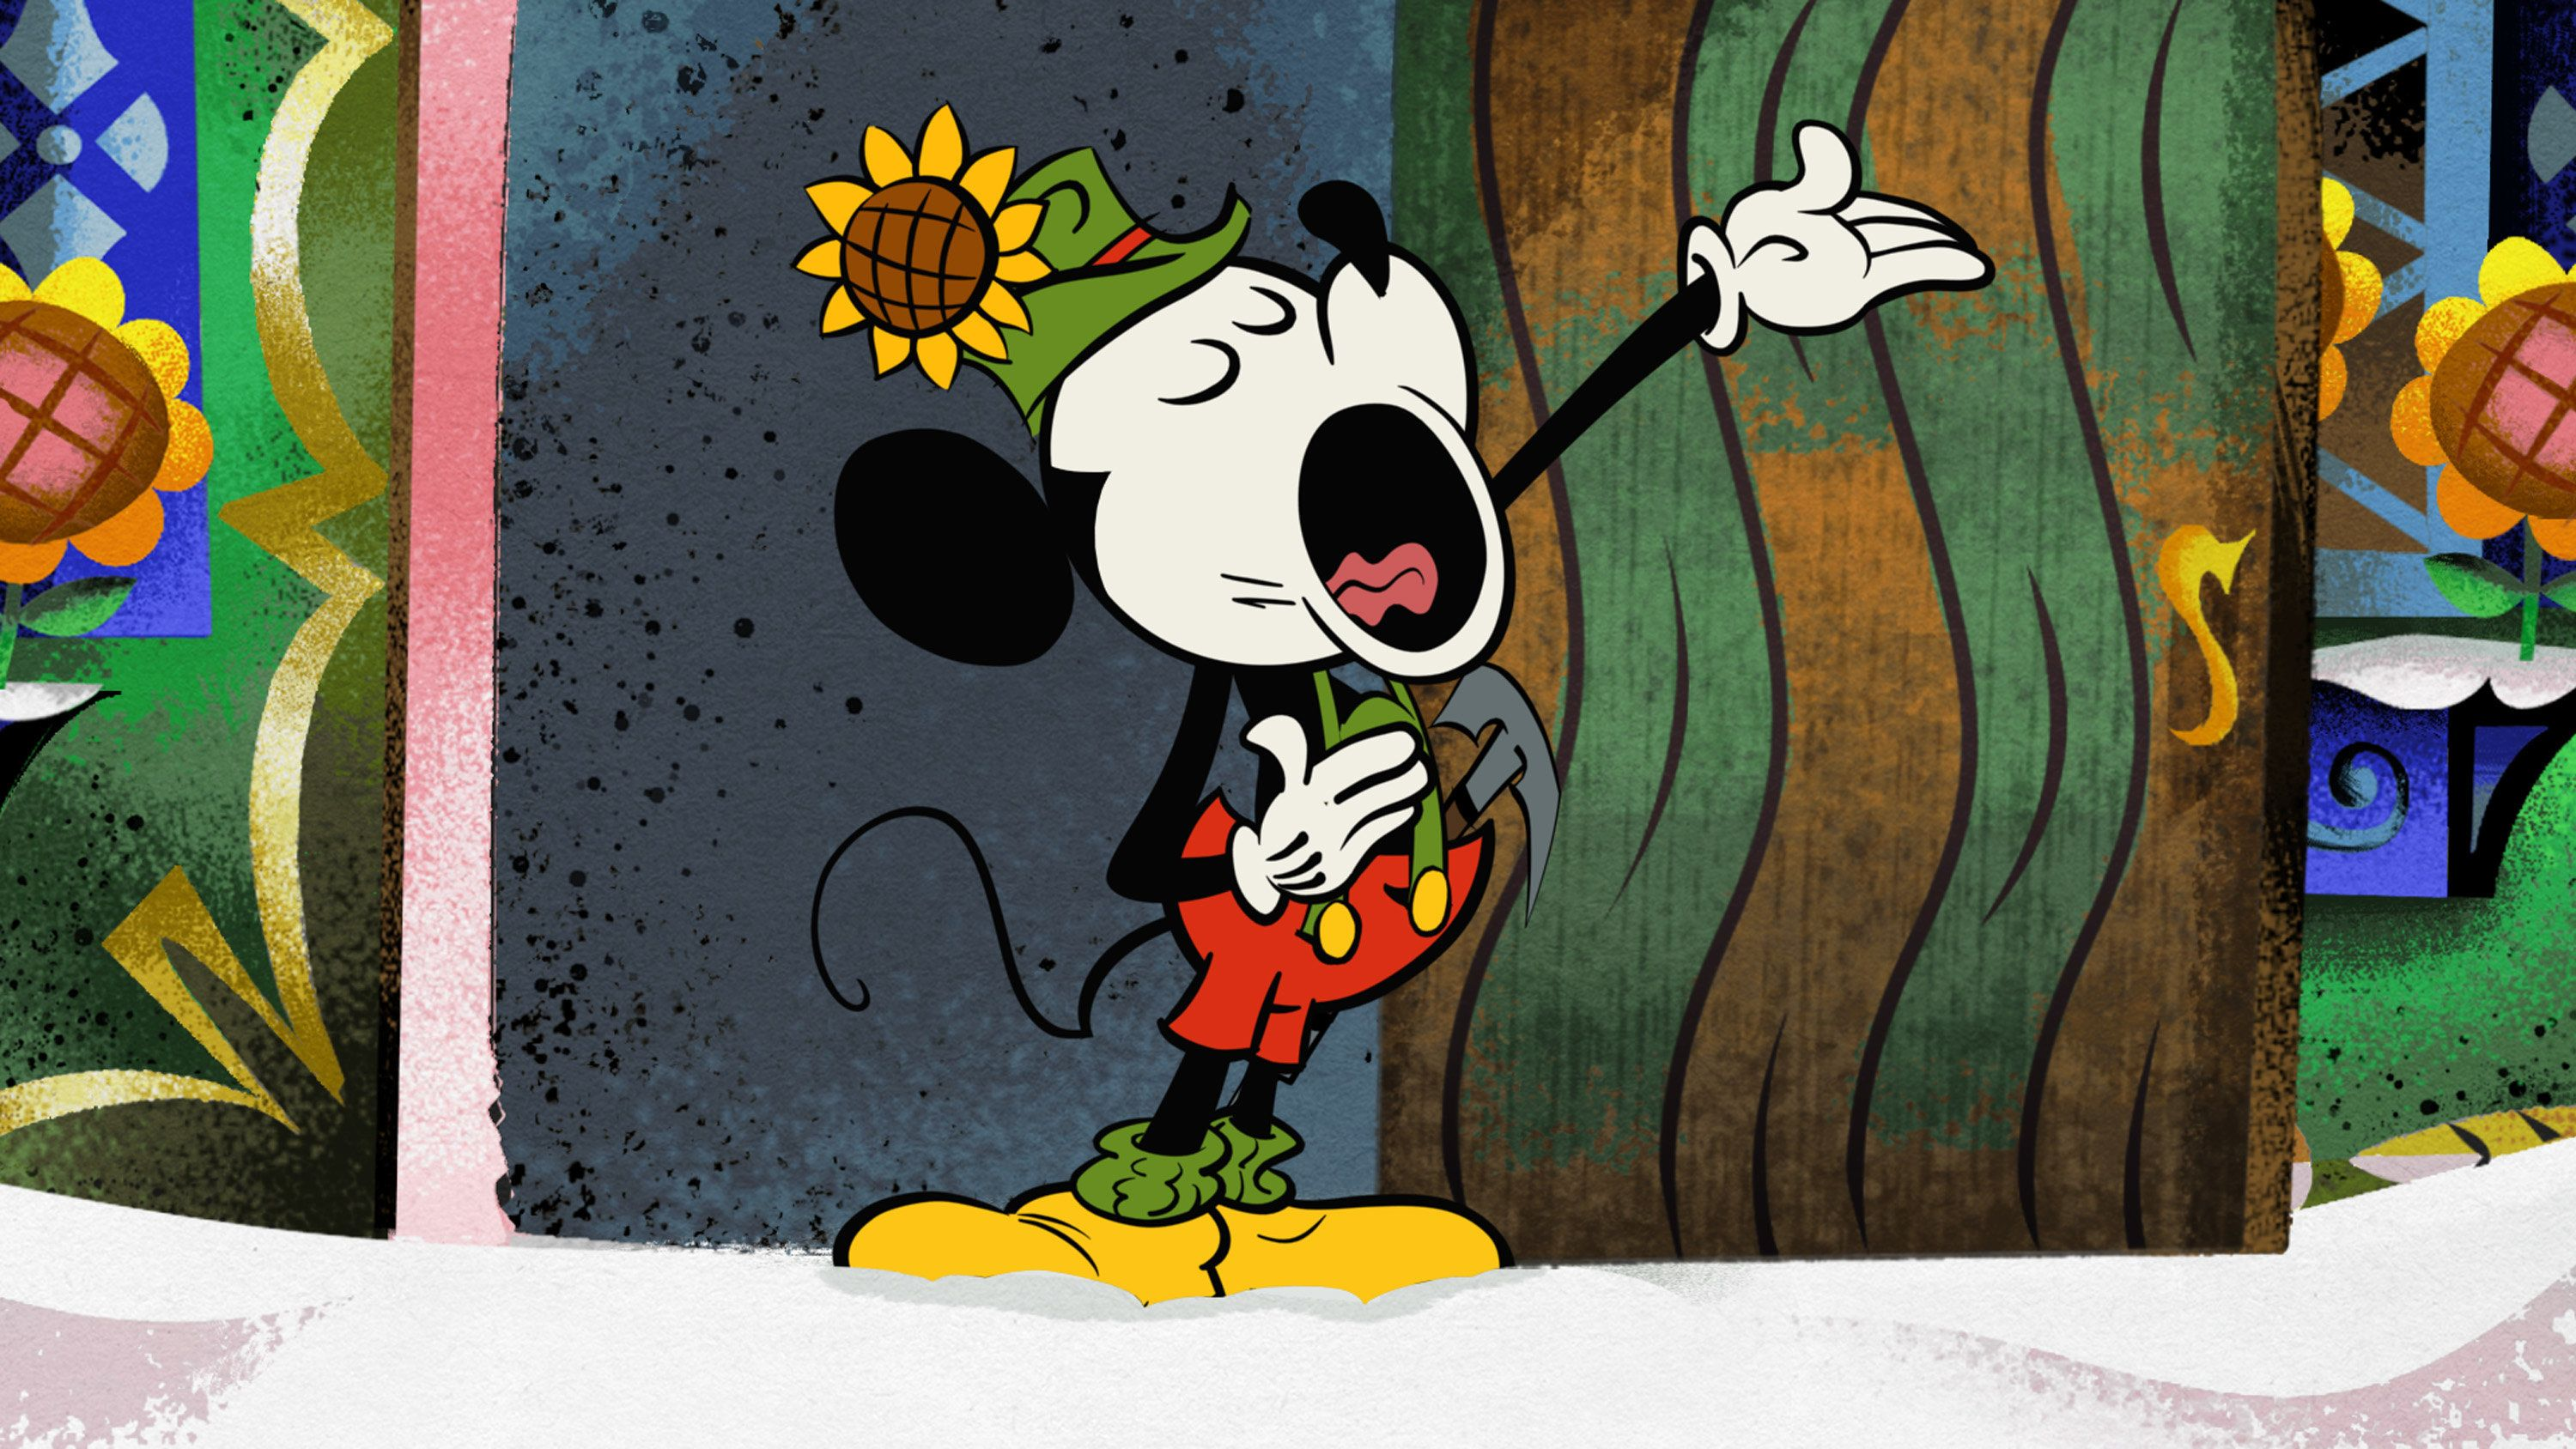 MICKEY MOUSE SHORTS - 'Yodelberg' - 'Mickey Mouse,' a new short-form series of 2D comedy cartoons featuring Disney's #1 star, will make its television debut with three new cartoon shorts the weekend of FRIDAY, JUNE 28-SUNDAY, JUNE 30 (8:30 p.m., ET/PT) on Disney Channel.  New shorts will continue to roll out with Friday premieres beginning Friday, July 5.  Episodes will be available on WATCH Disney Channel, Disney.com, the Mickey Video Player App and iTunes following their linear premiere. (Image by Disney Channel via Getty Images) MICKEY MOUSE